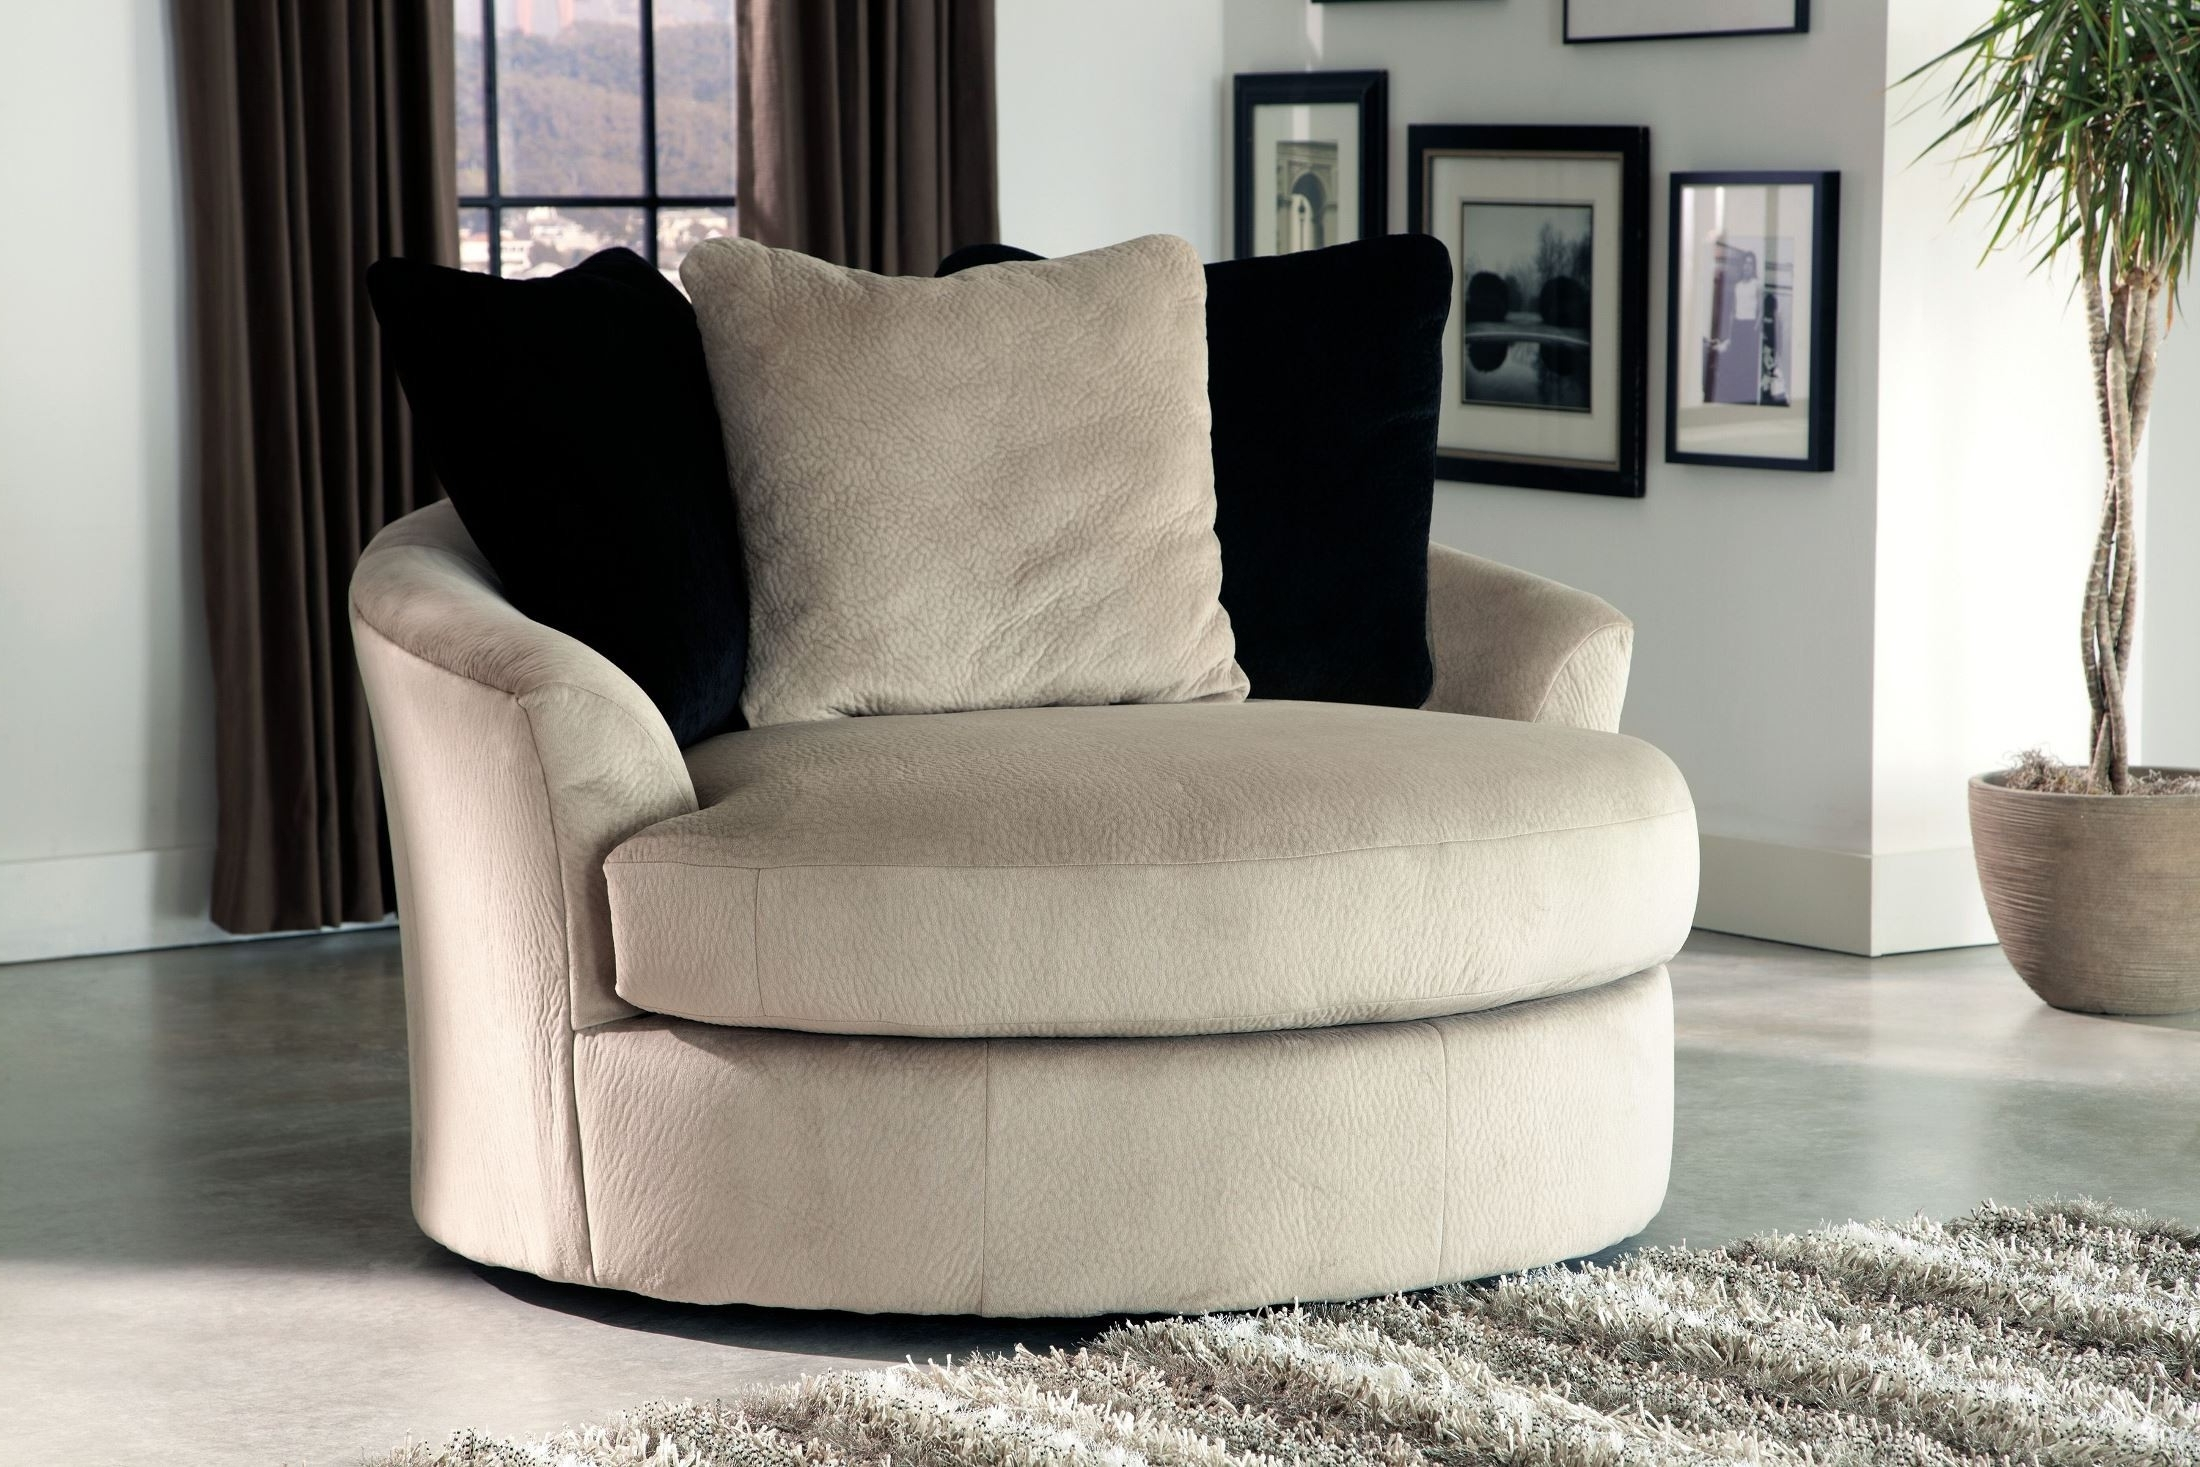 Round Swivel Sofa Chairs Pertaining To 2018 Chair : Cheap Swivel Chairs Round Swivel Cuddle Chair Swivel Couch (View 8 of 20)